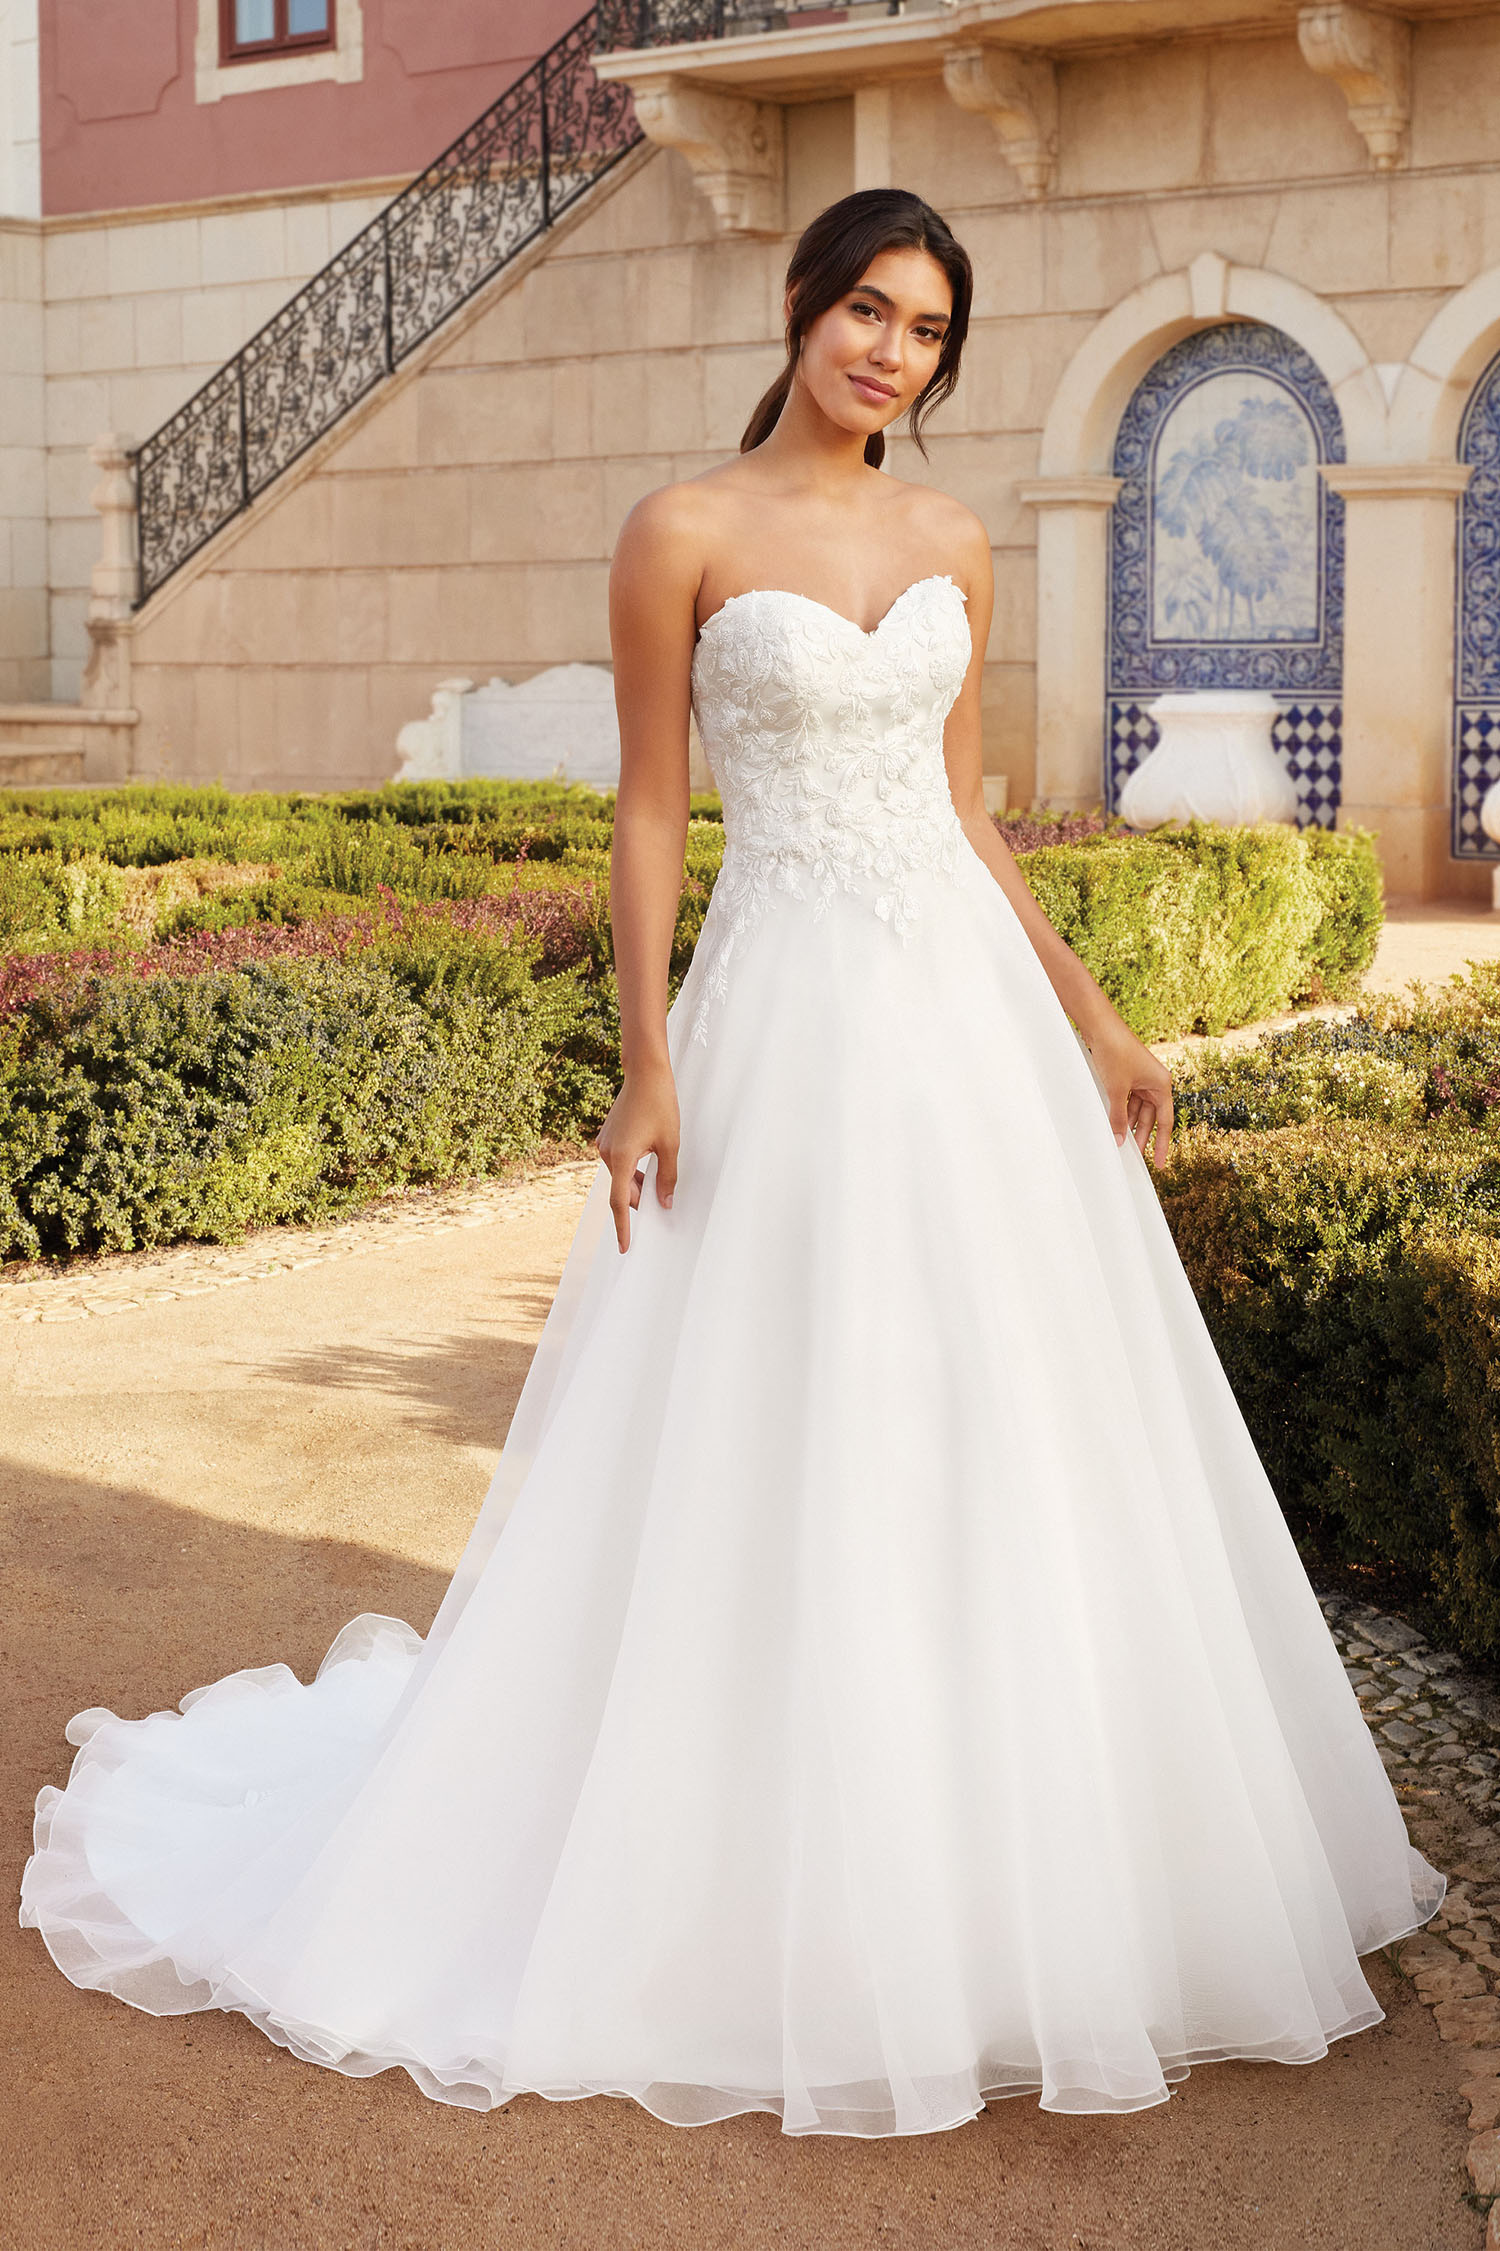 Bride wearing an Aline wedding gown with sweetheart neckline and beaded bodice over a full organza skirt.